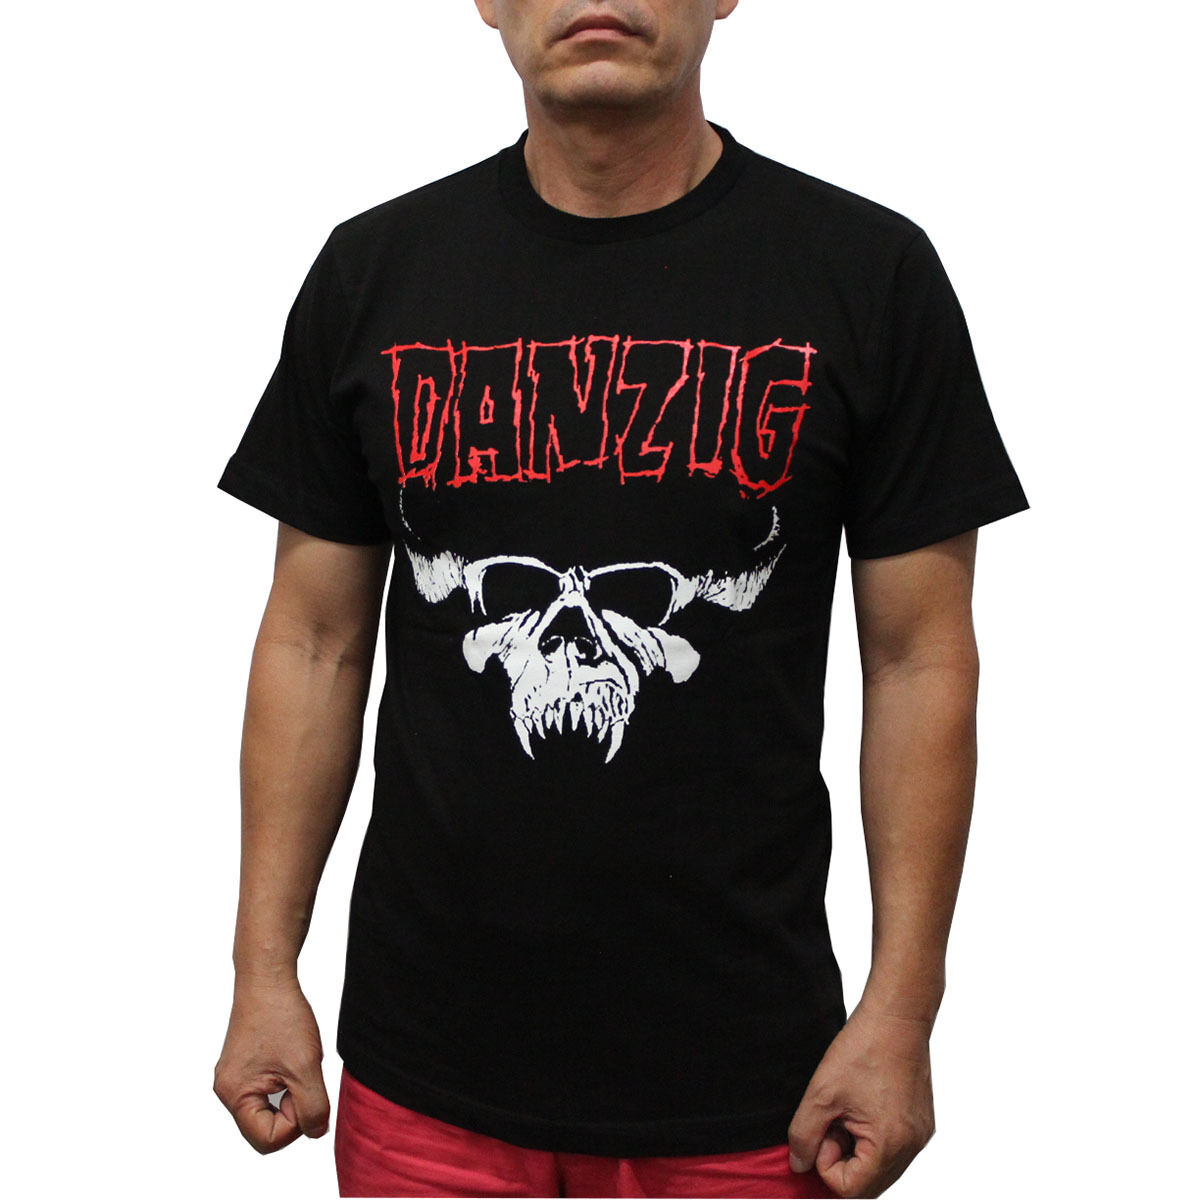 Danzig Heavy Metal Band T-Shirt Red Logo